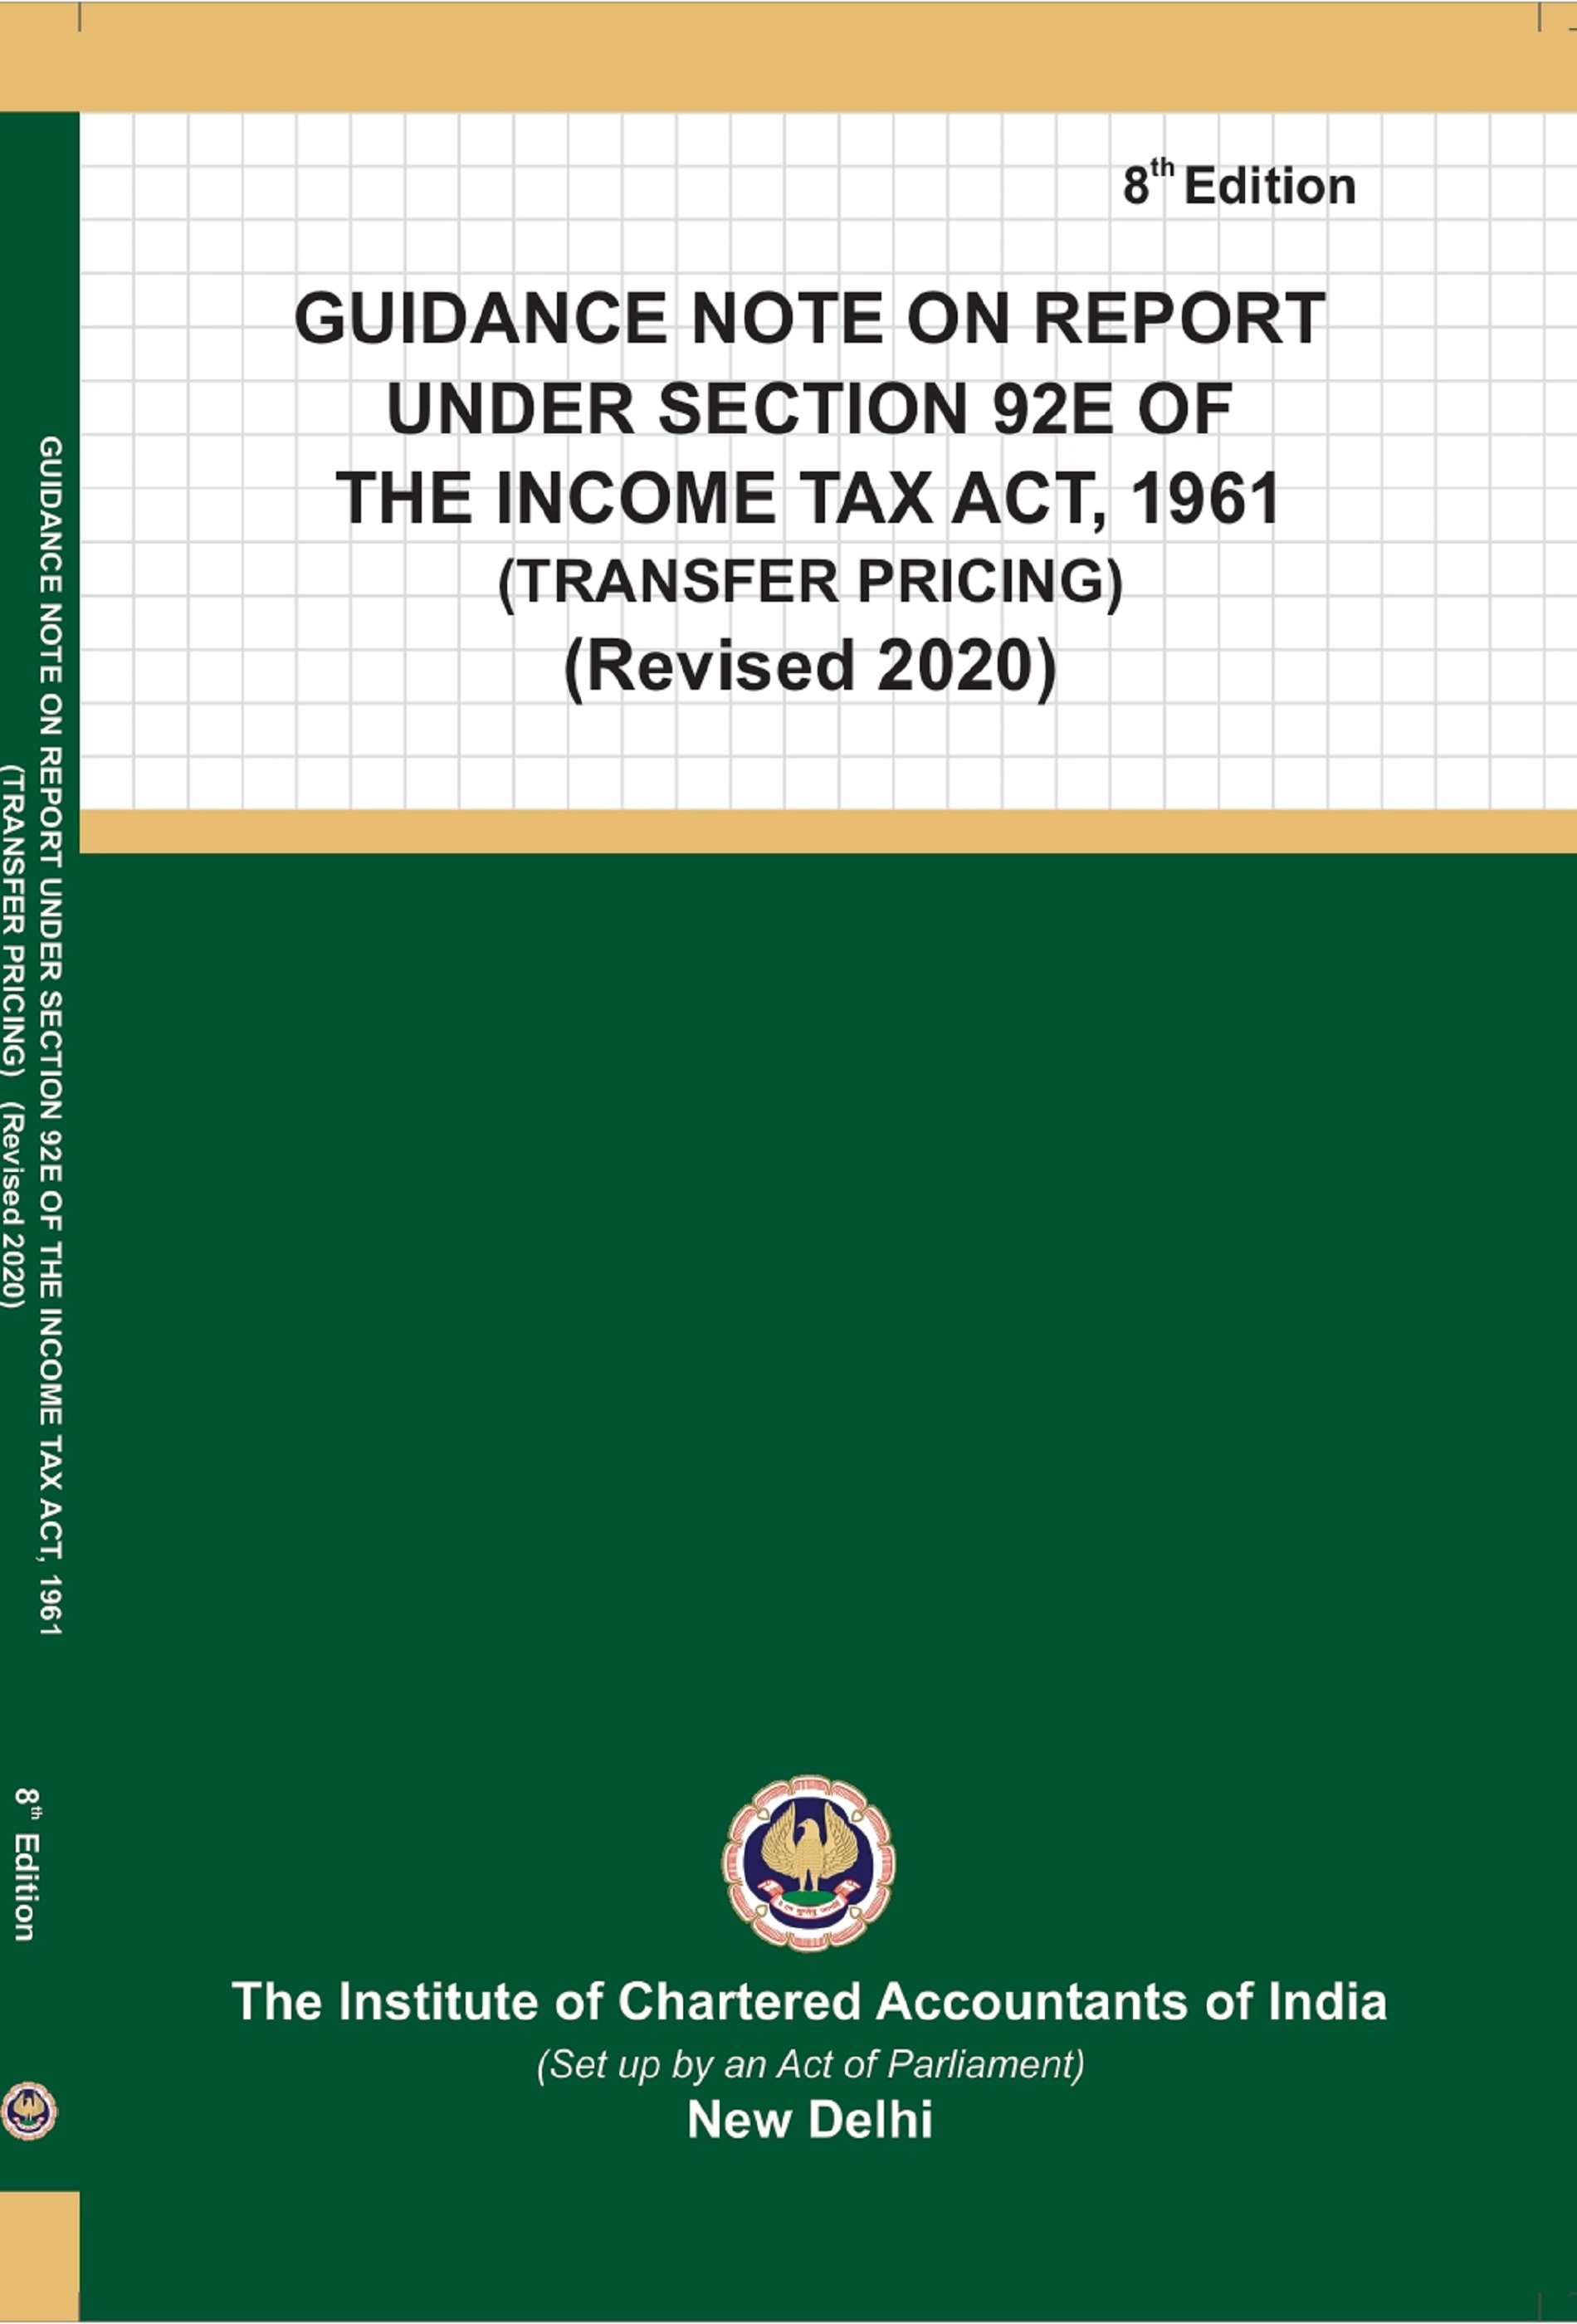 Guidance Note on Report under Section 92E of the Income Tax Act, 1961 (Transfer Pricing) (Revised 2020)